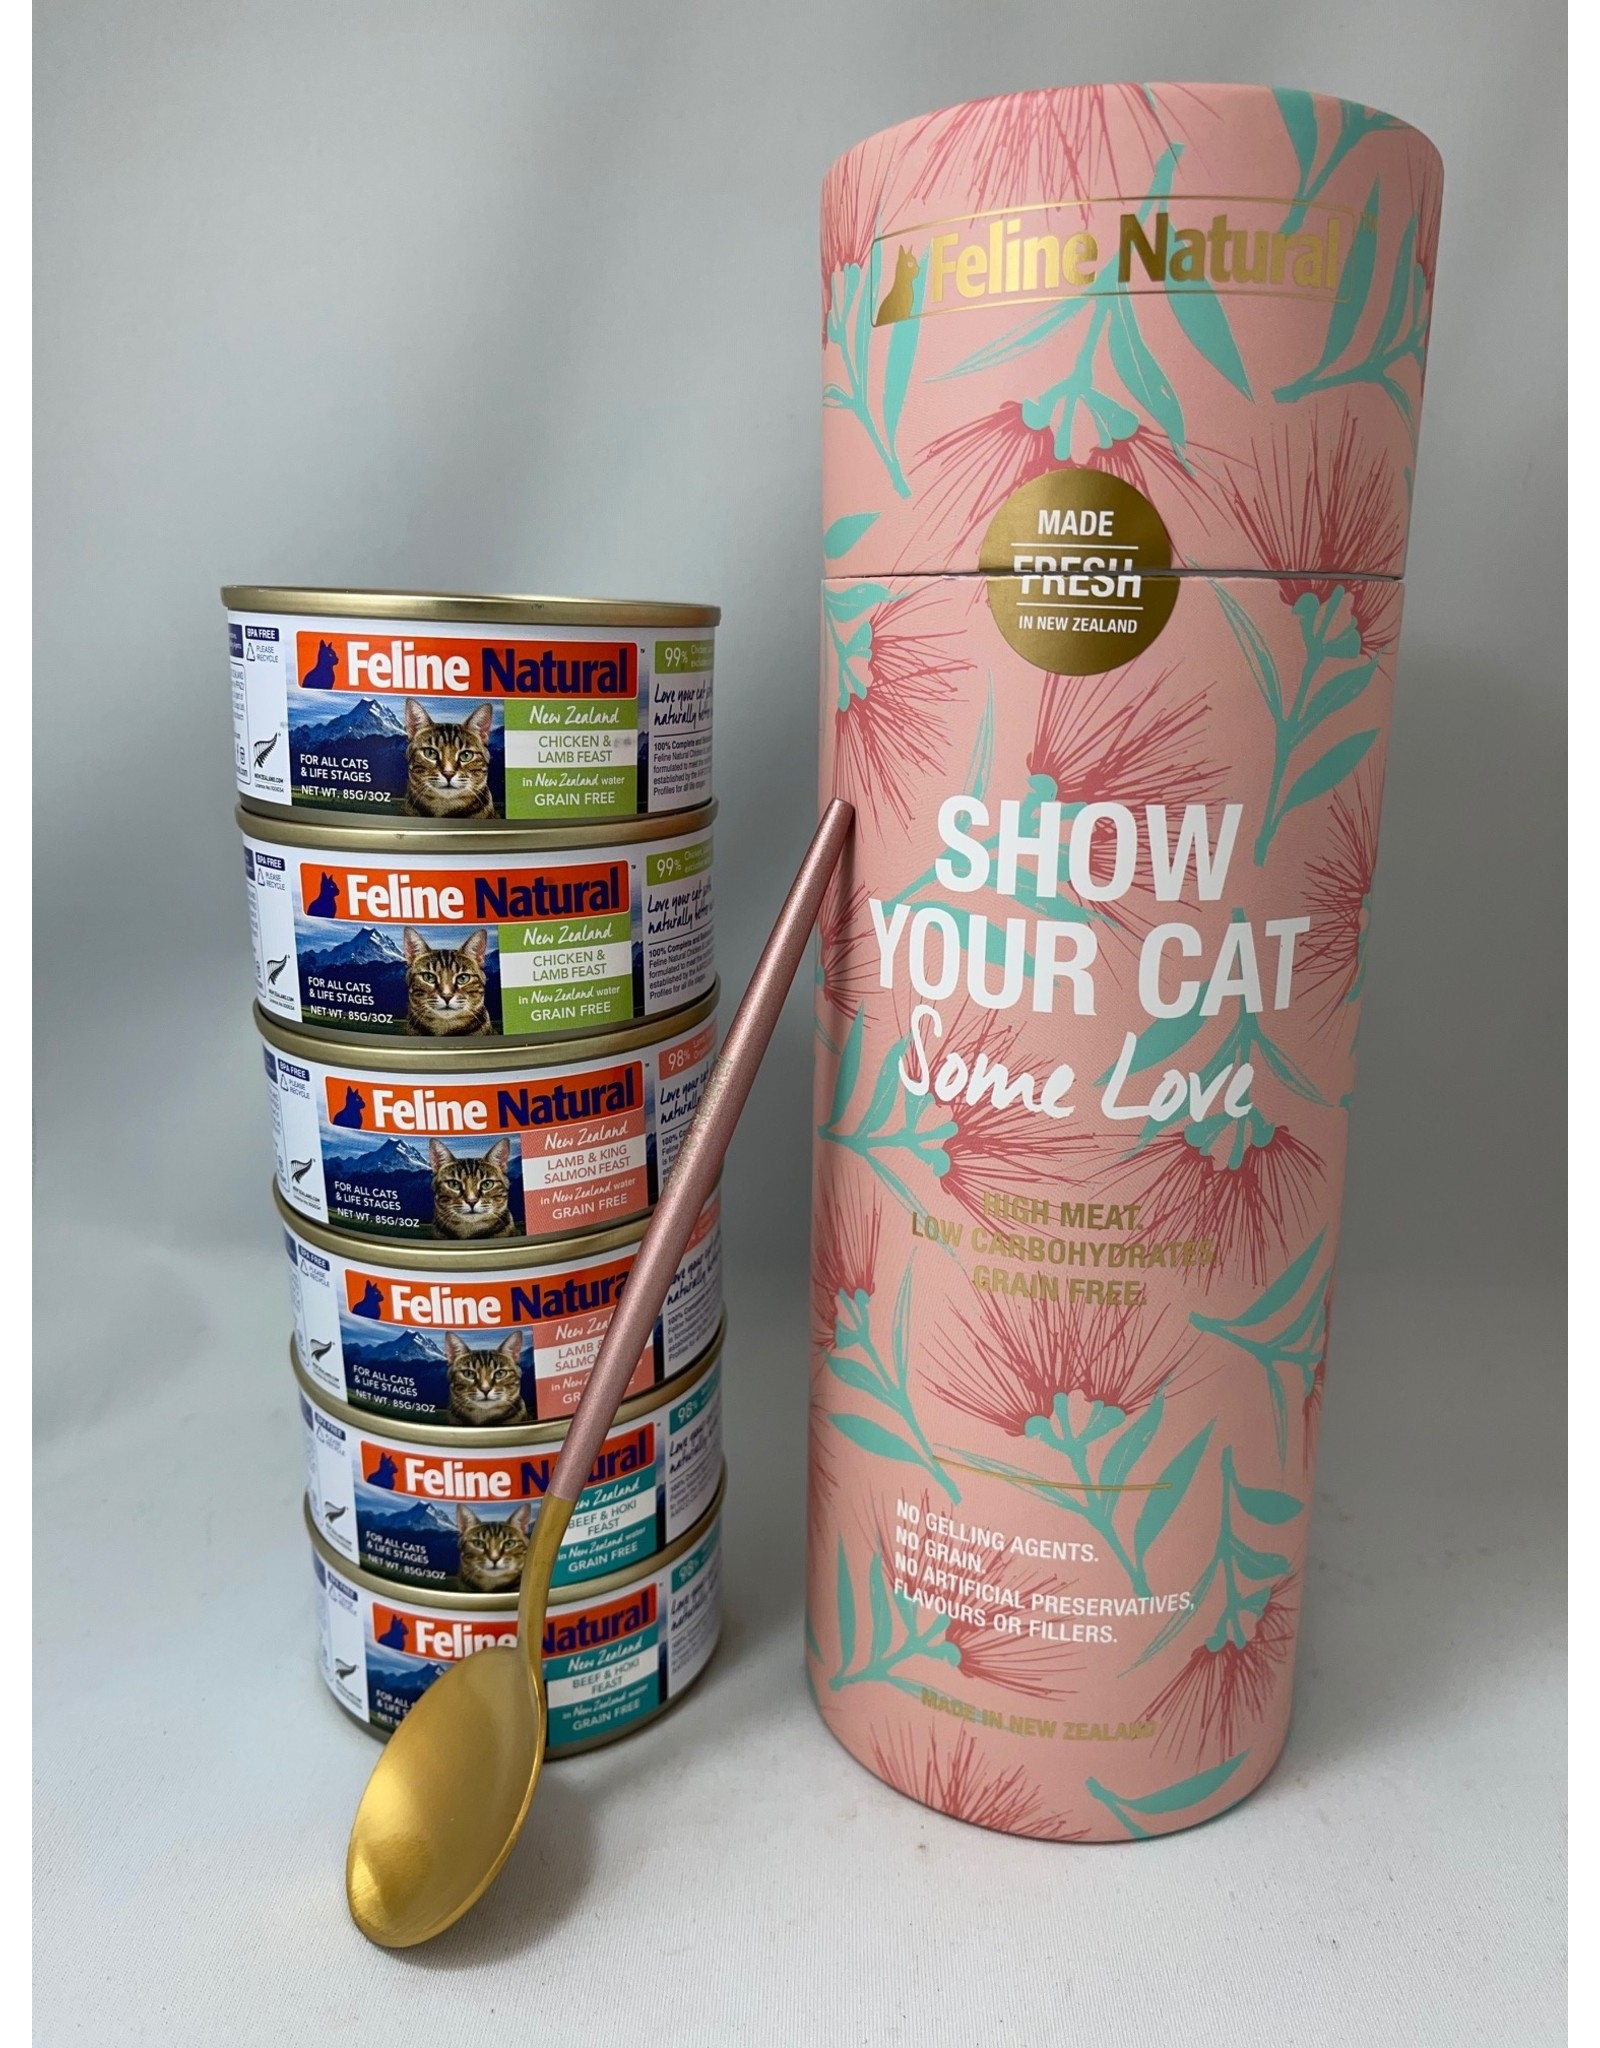 K9 Natural Feline Natural, Wet Love Your Cat , Canister 6 x 3oz